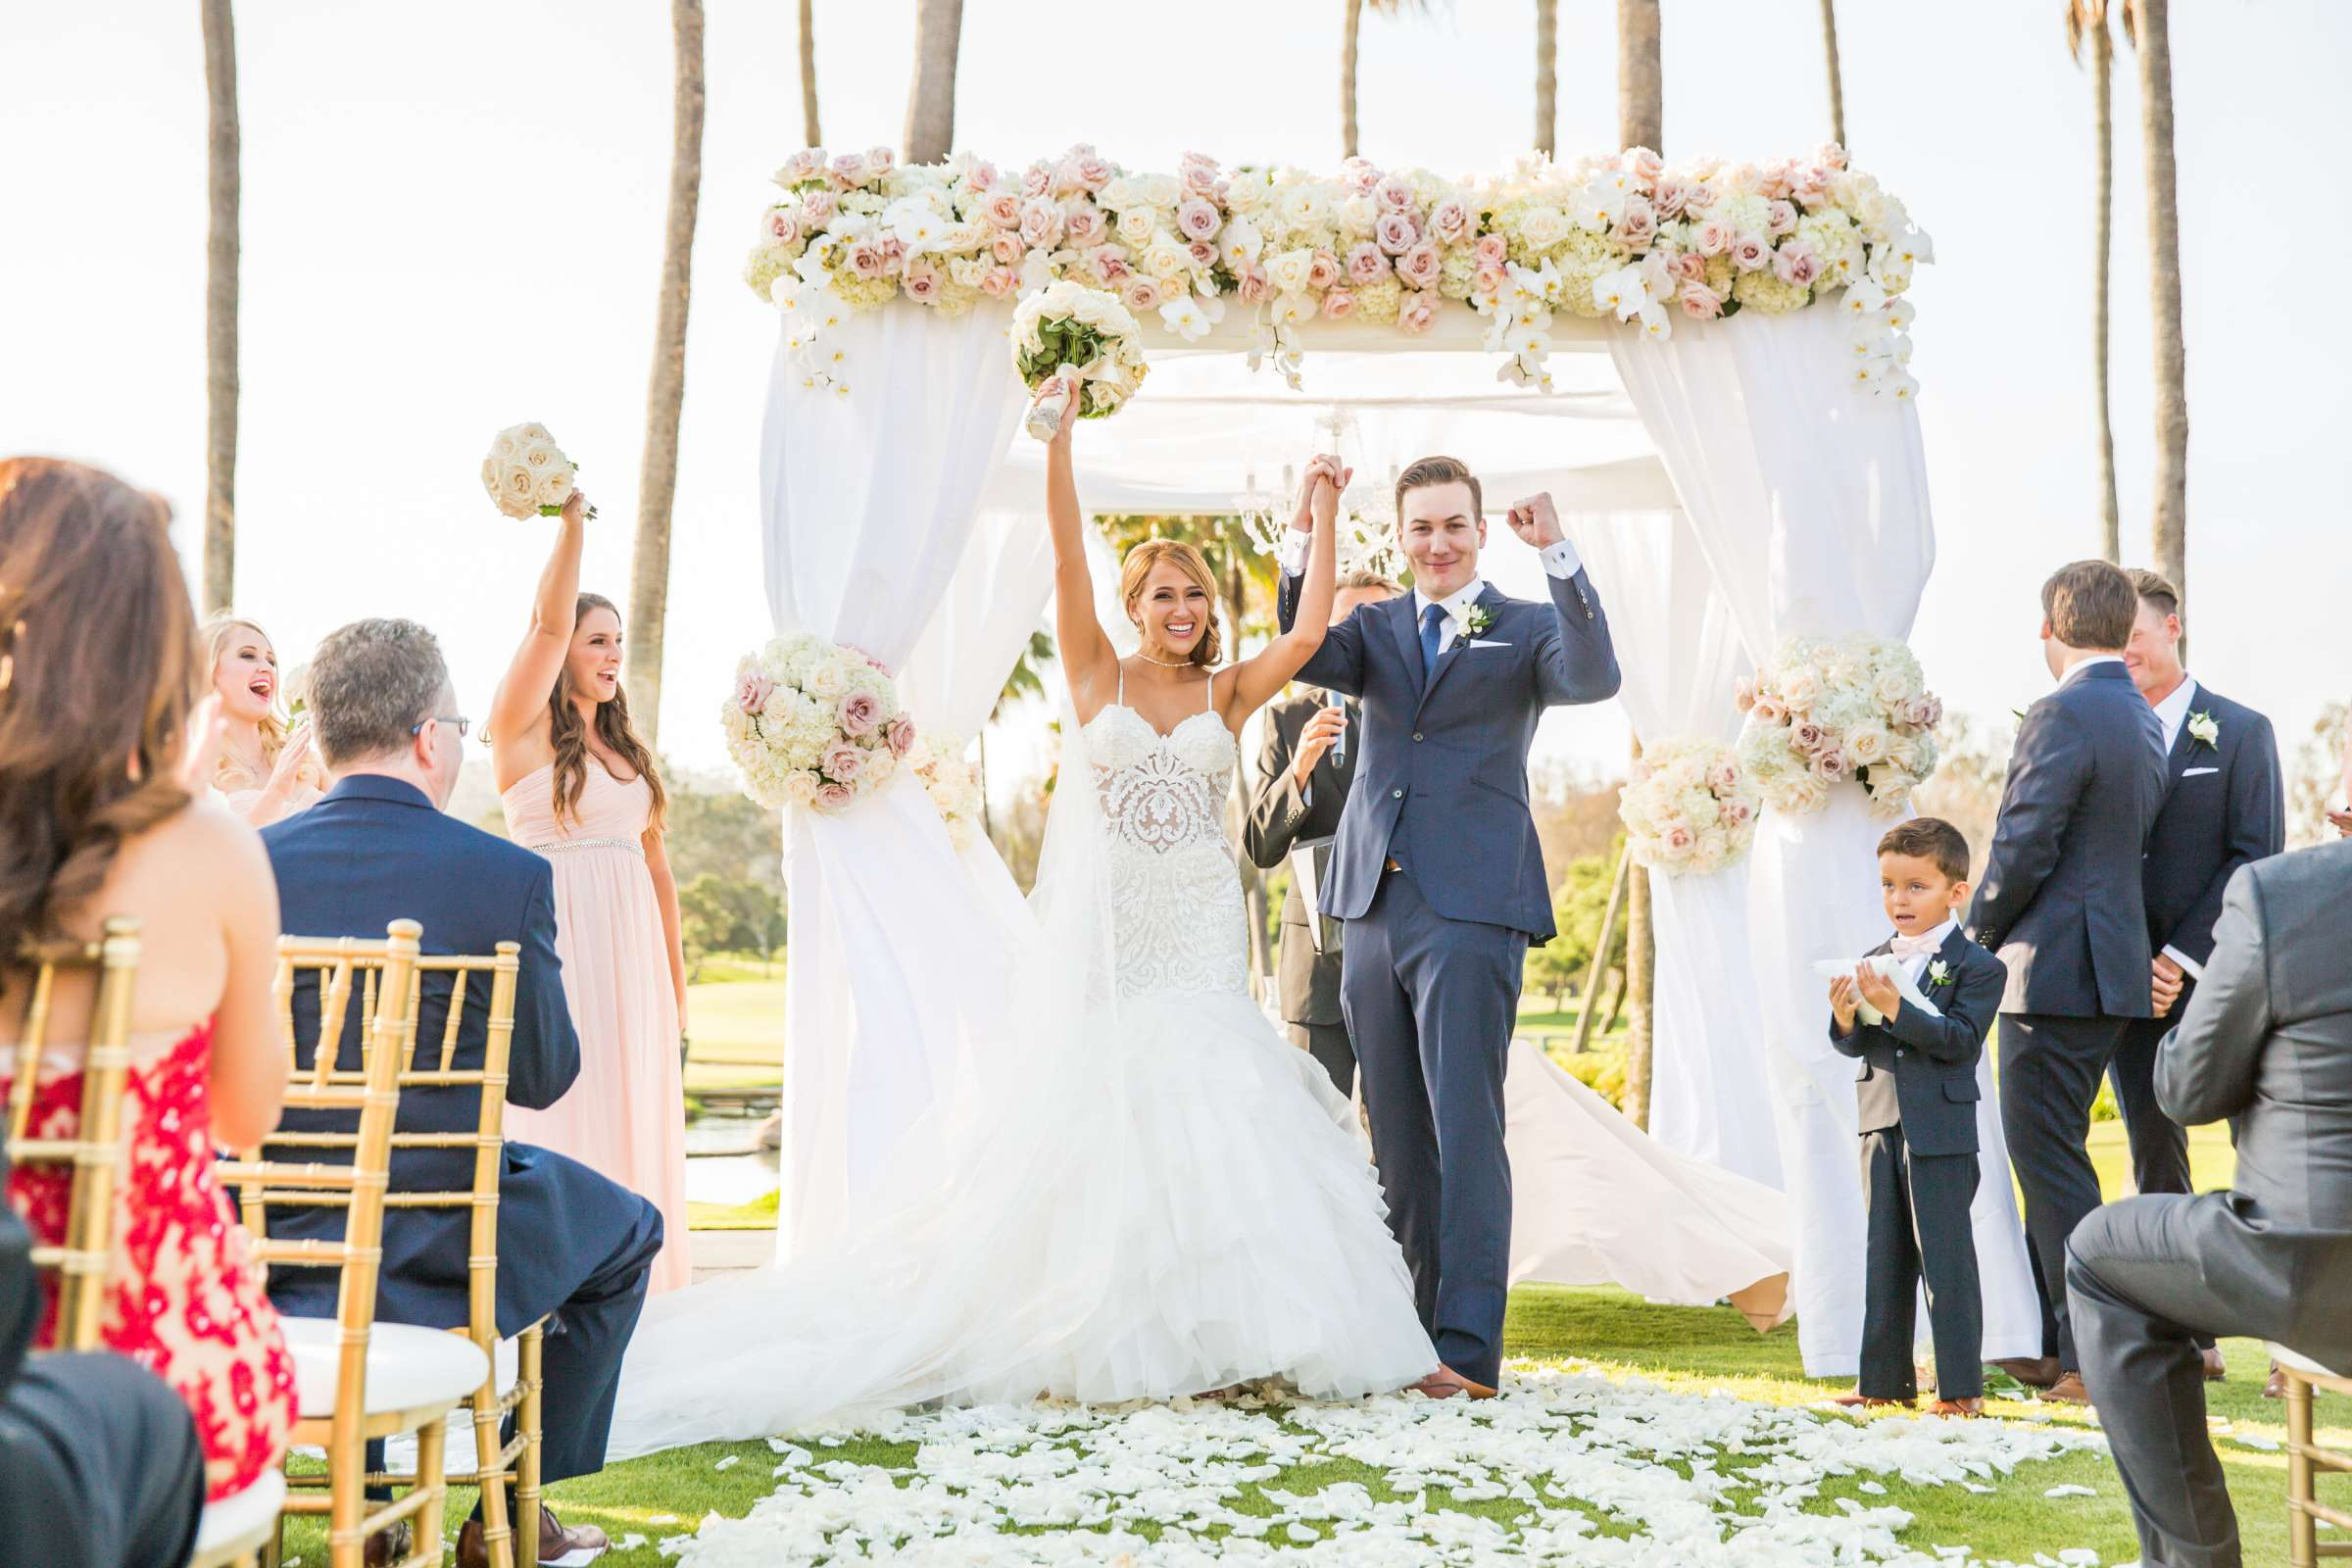 Fairbanks Ranch Country Club Wedding coordinated by Monarch Weddings, Gabriella and Kyle Wedding Photo #95 by True Photography